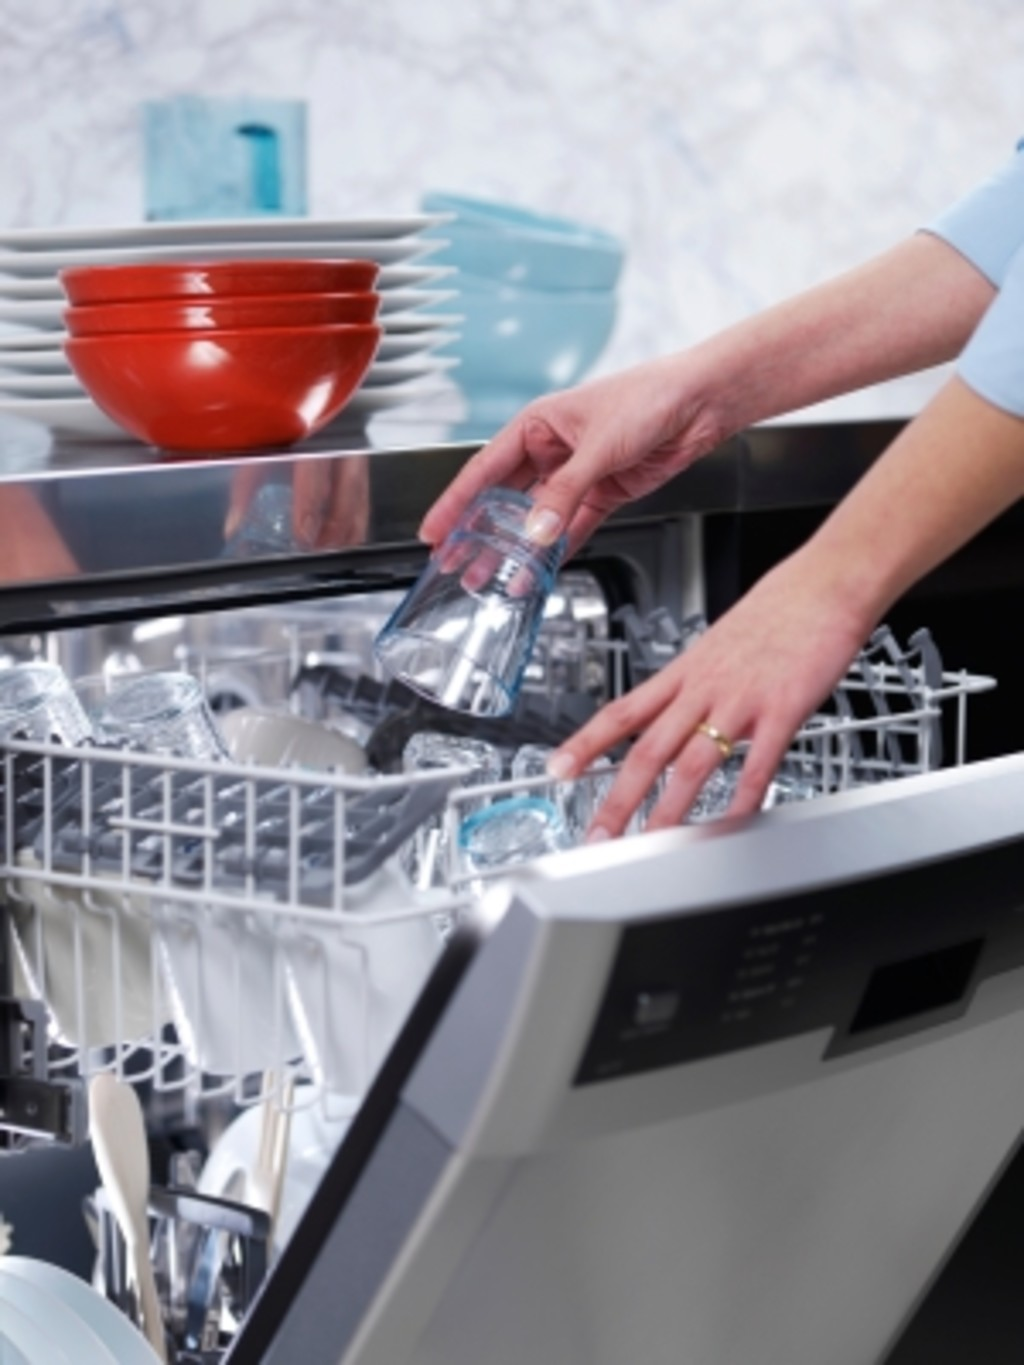 Advancetech Appliance Service - Dishwasher Repair